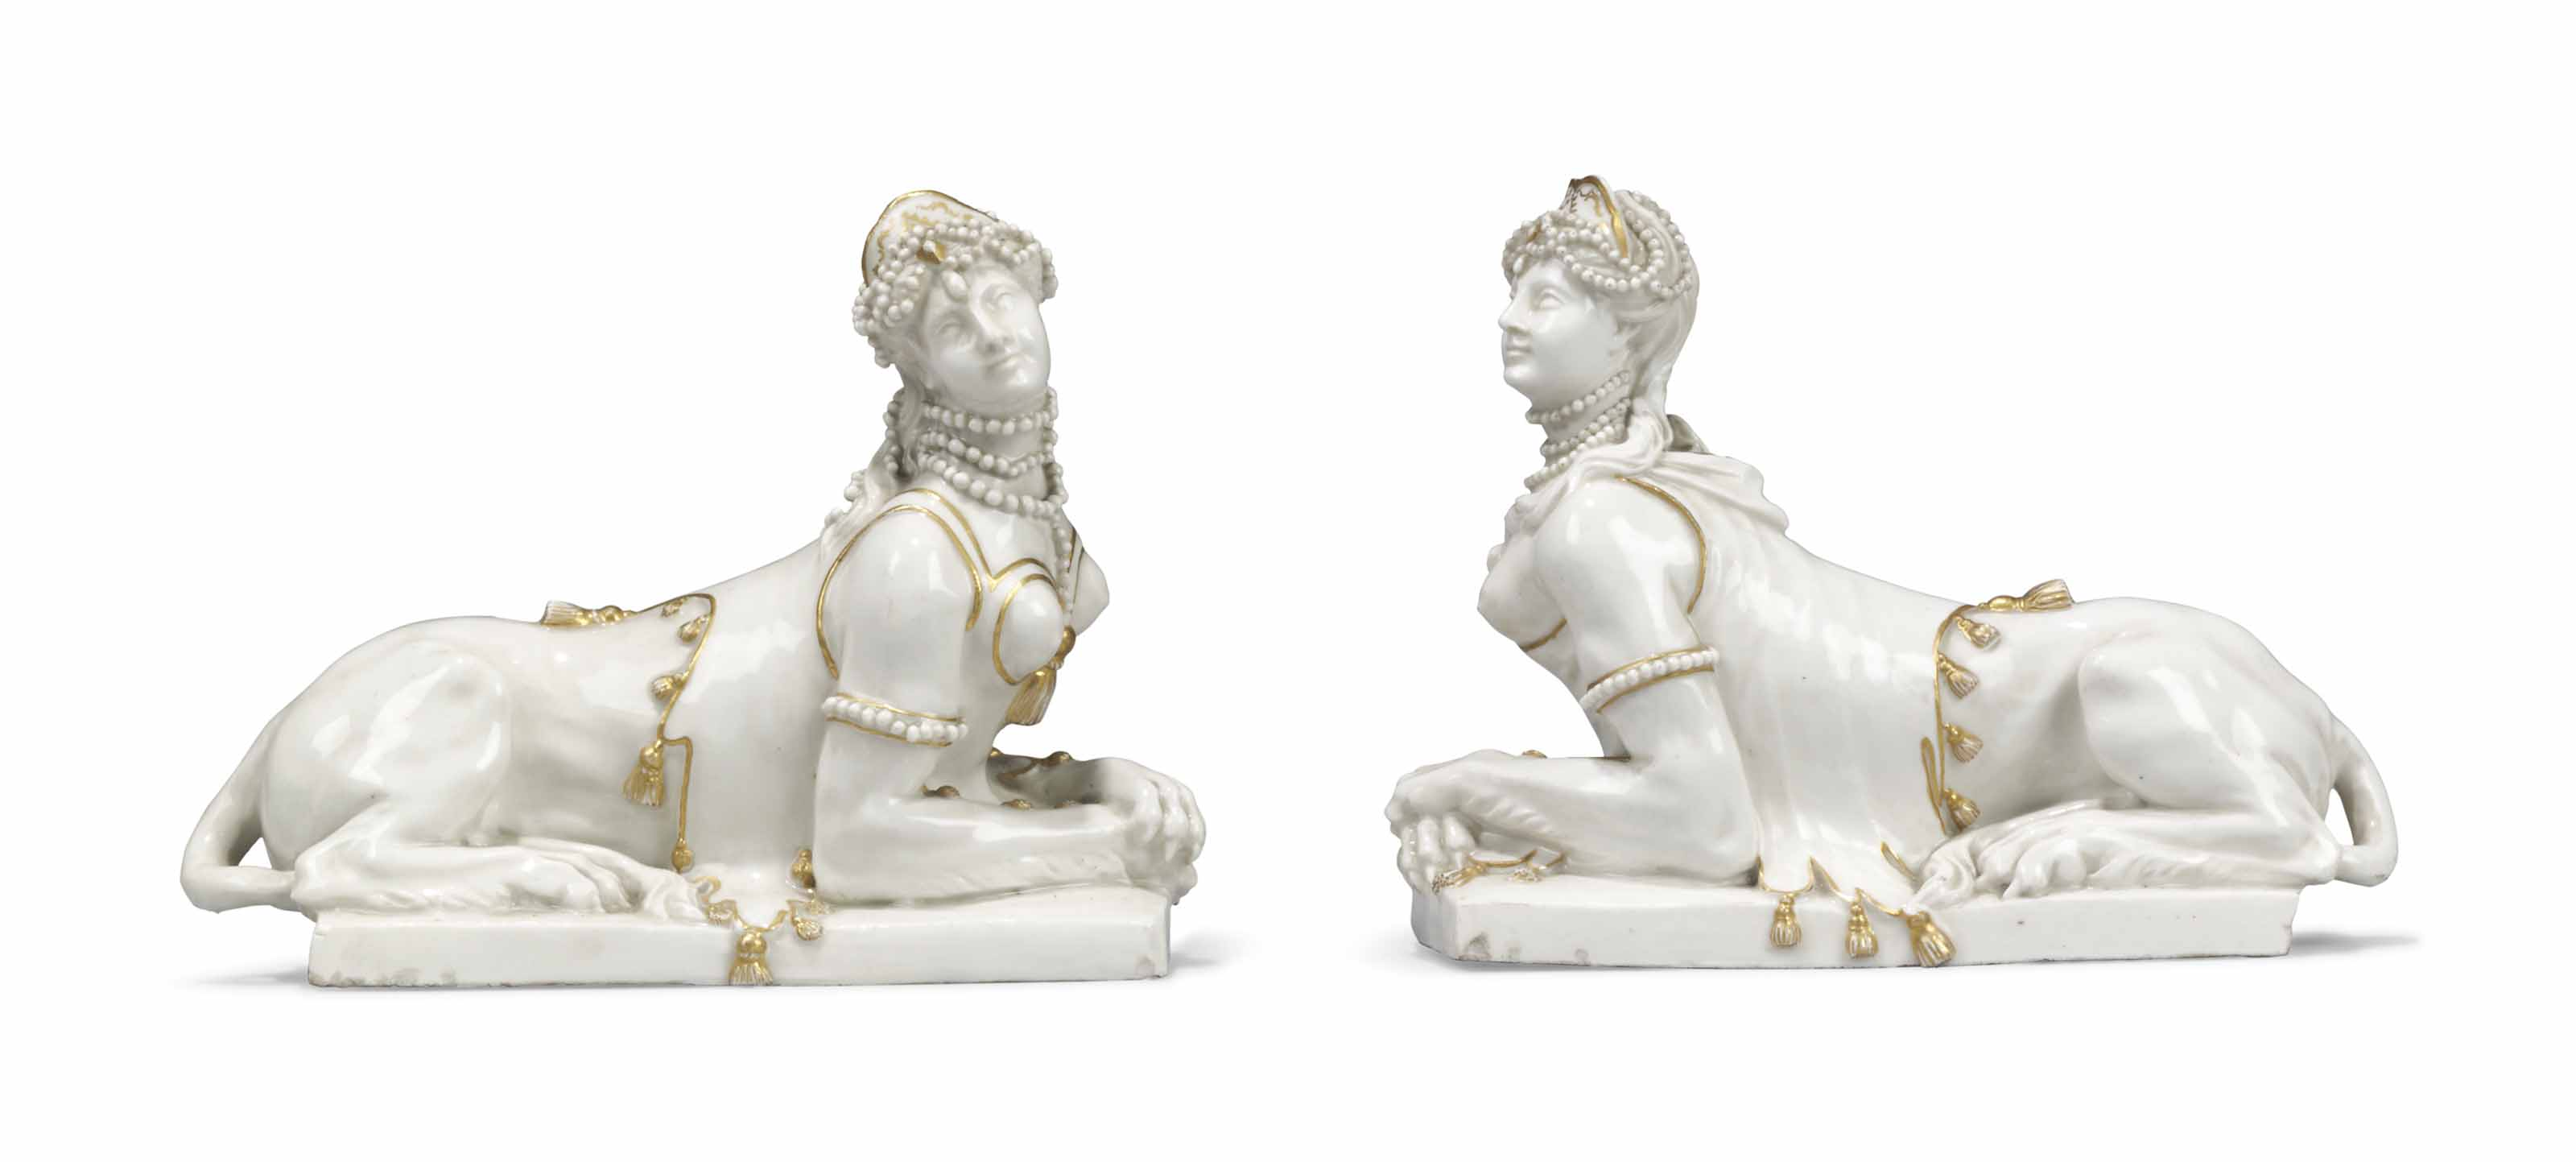 A PAIR OF LUDWIGSBURG WHITE AND GILT MODELS OF SPHINXES